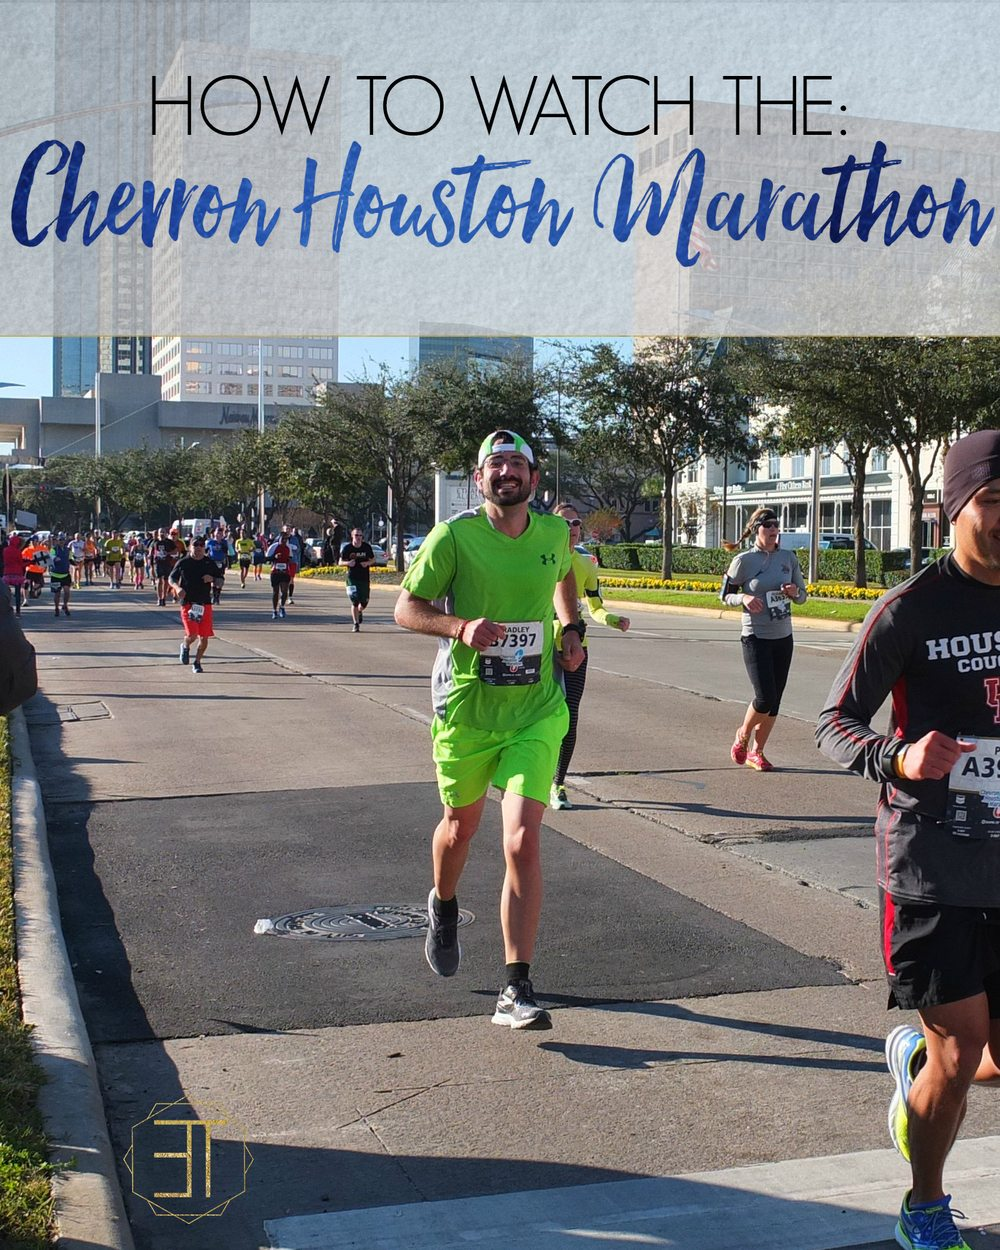 How to and where to watch the Chevron Houston Marathon.